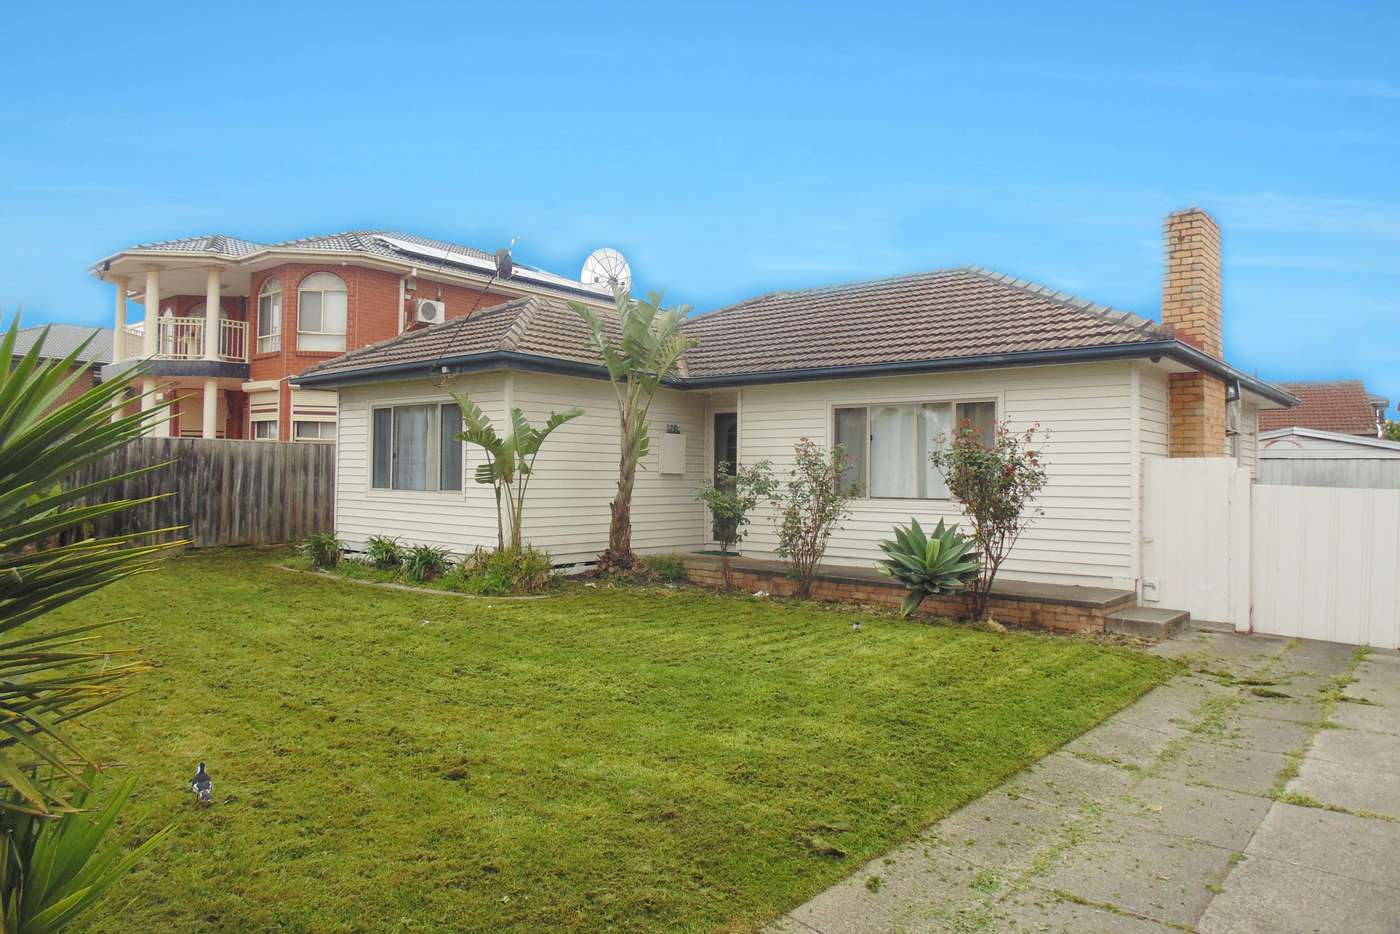 Main view of Homely house listing, 1029 Heatherton Road, Noble Park VIC 3174